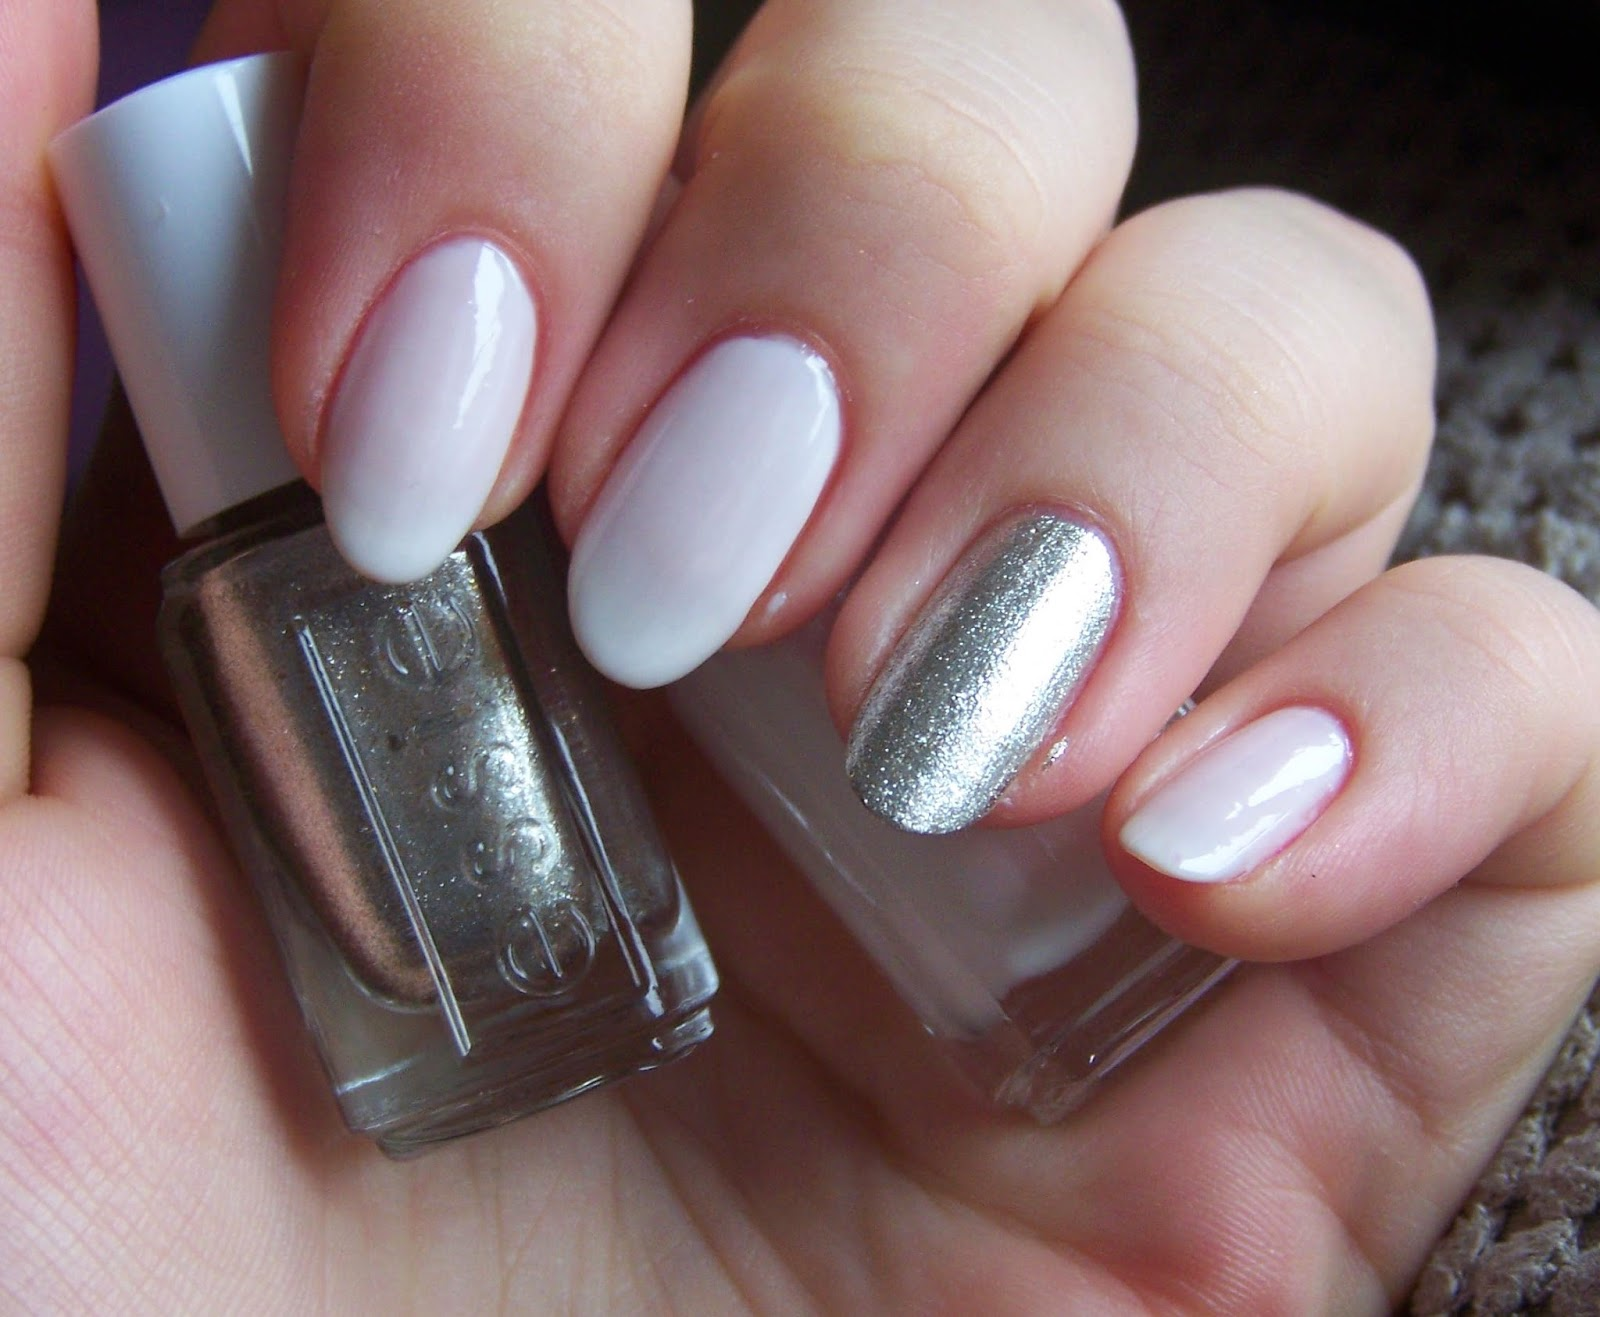 Essie Winter Collection - Jiggle Hi Jiglle Low & Tuck It In My Tux